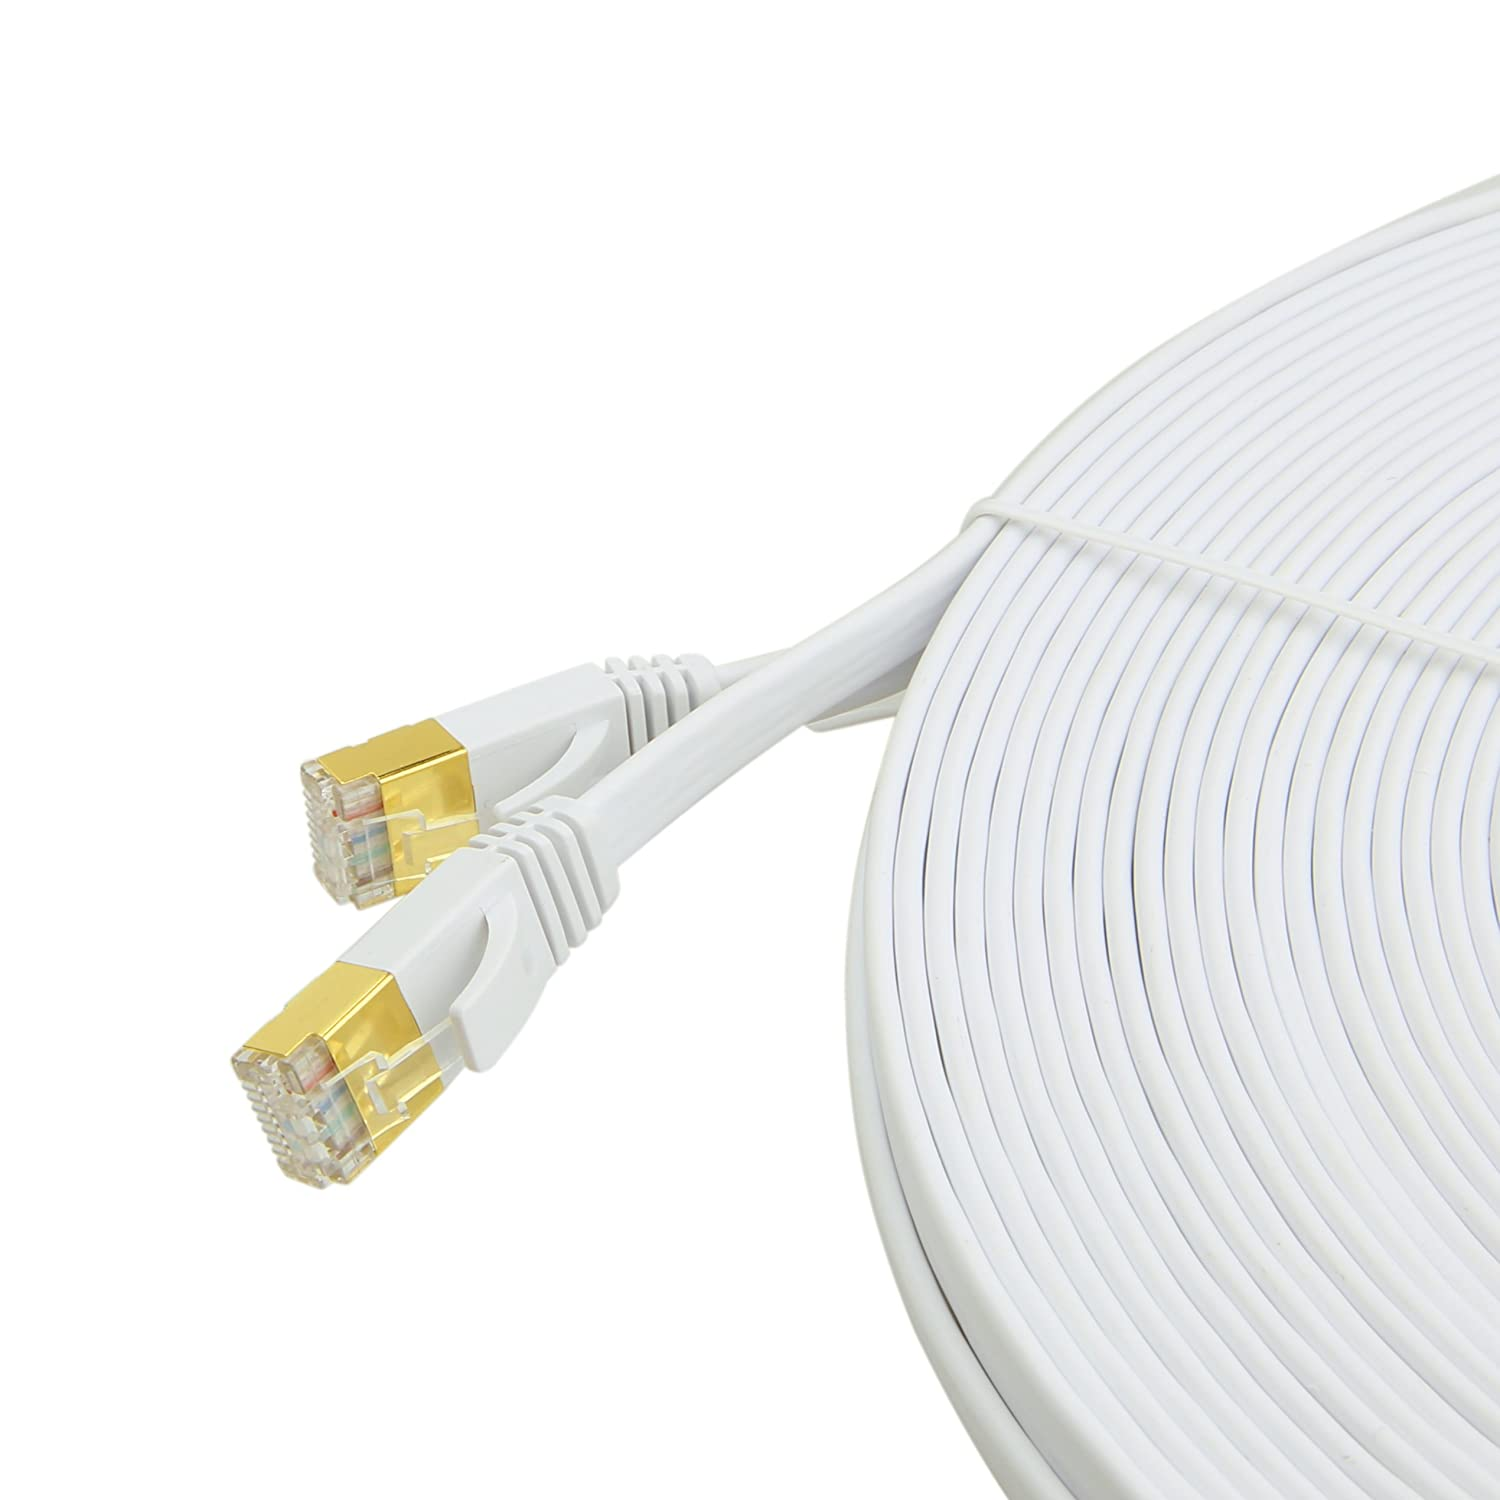 Cat7 Ethernet Cable 100 Feet With Clipssnagless Network Cables Cat5e Black Flat Patch 32 Awg 50 Foot Micron Gold Plated Rj45 Shielded White Ft Computers